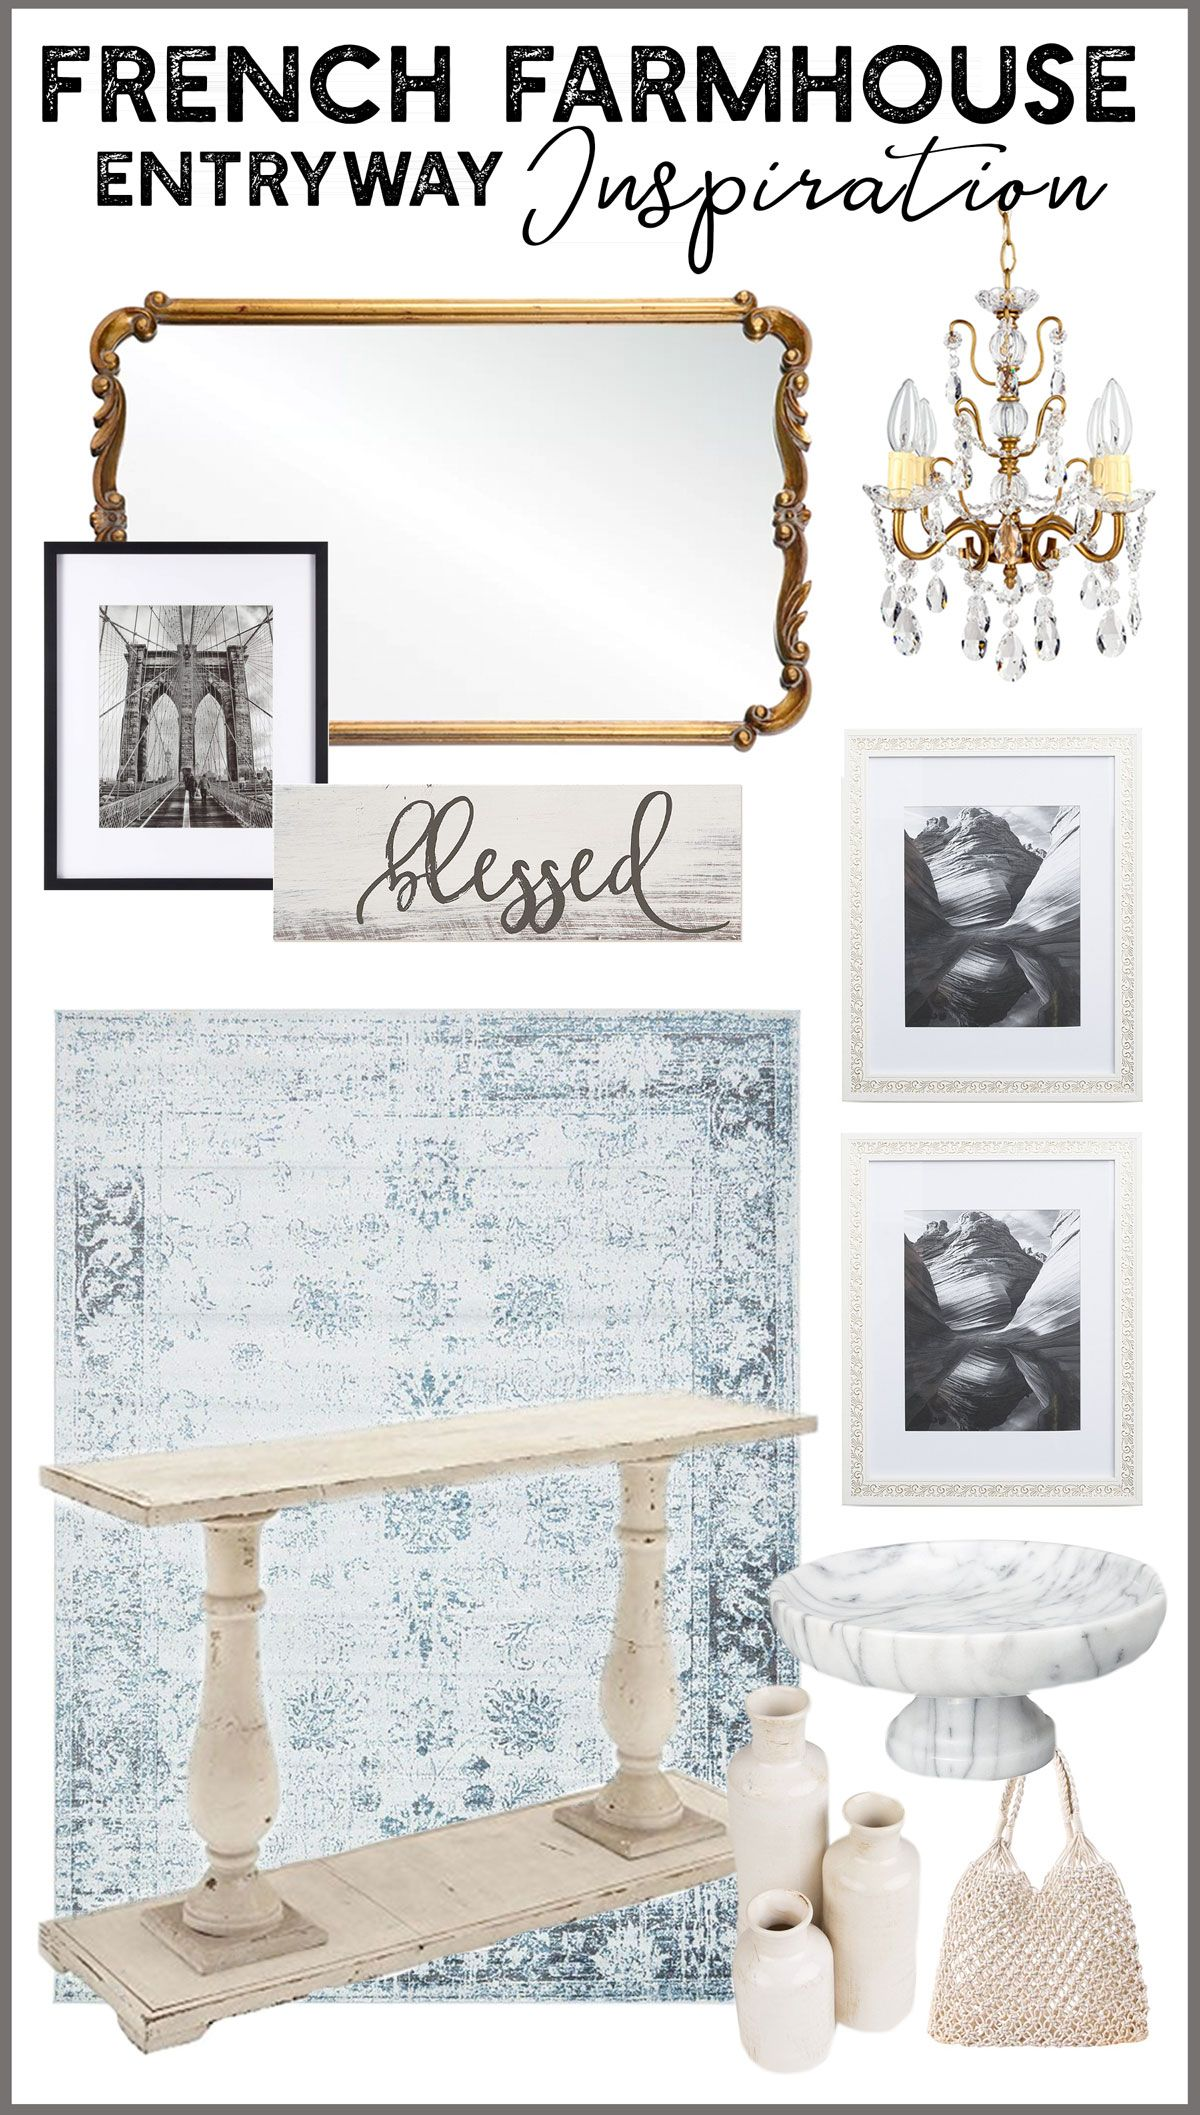 Design elements come together in this mood board for a Traditional French Farmhouse entryway / foyer. #modernfarmhouse #traditionalfarmhouse #frenchfarmhouse #frenchstyle #entryway #foyer #moodboard #designelements #camitidbits #interiordesigner